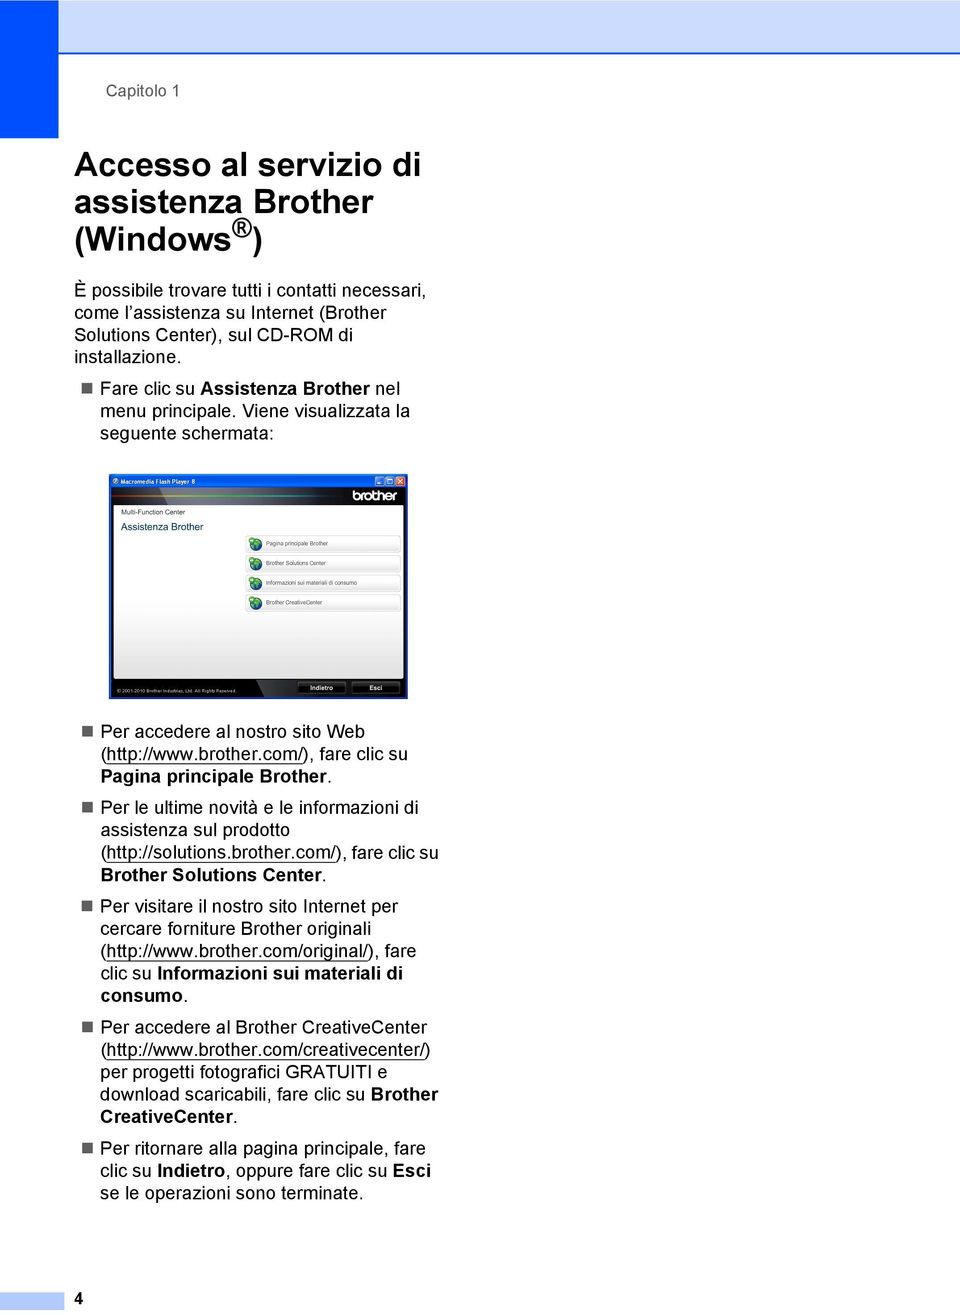 Per le ultime novità e le informazioni di assistenza sul prodotto (http://solutions.brother.com/), fare clic su Brother Solutions Center.